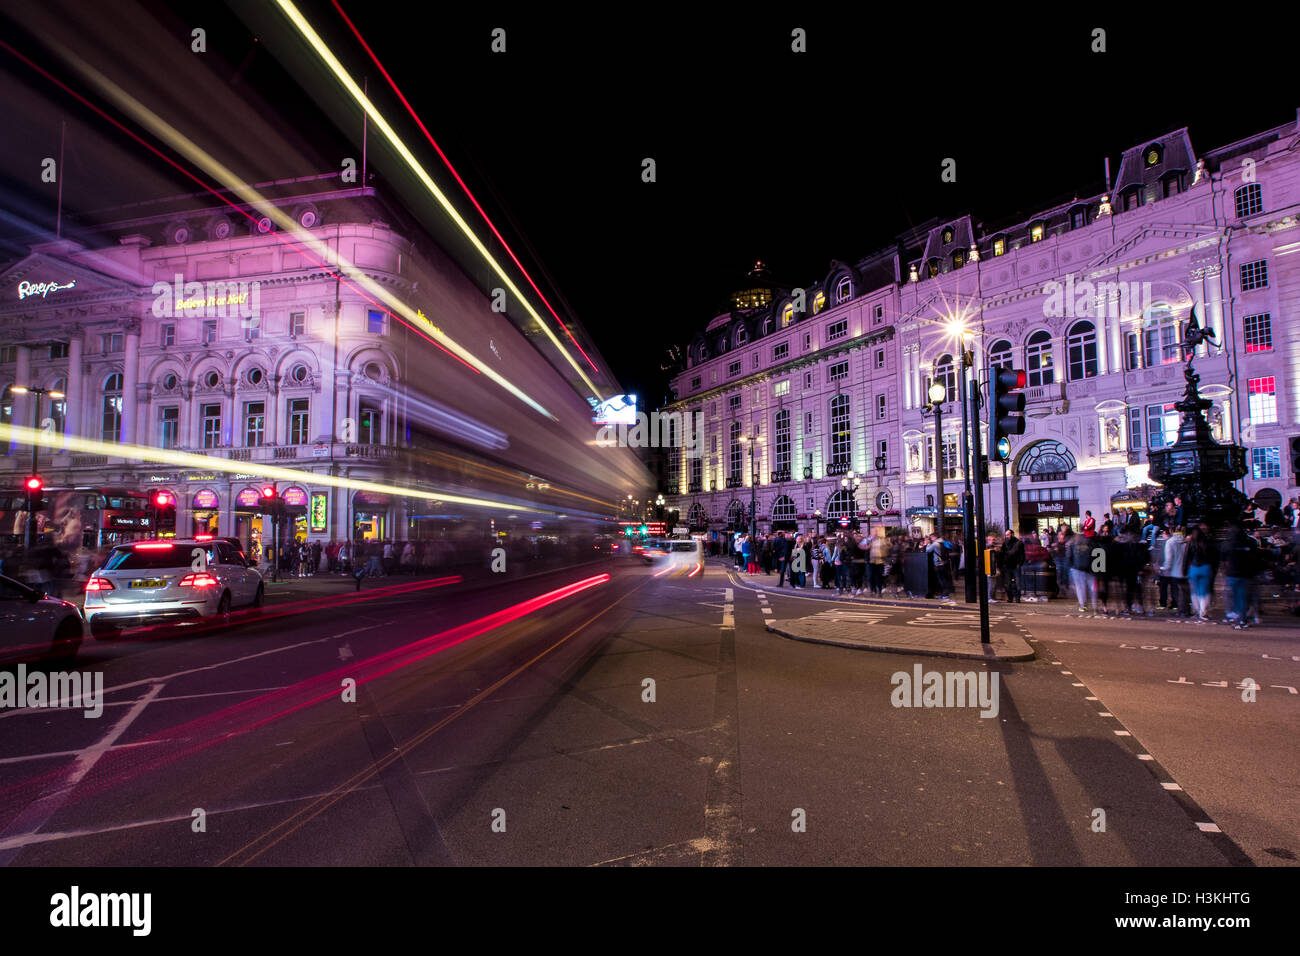 Light Trail Trails at London Piccadilly Circus - Stock Image